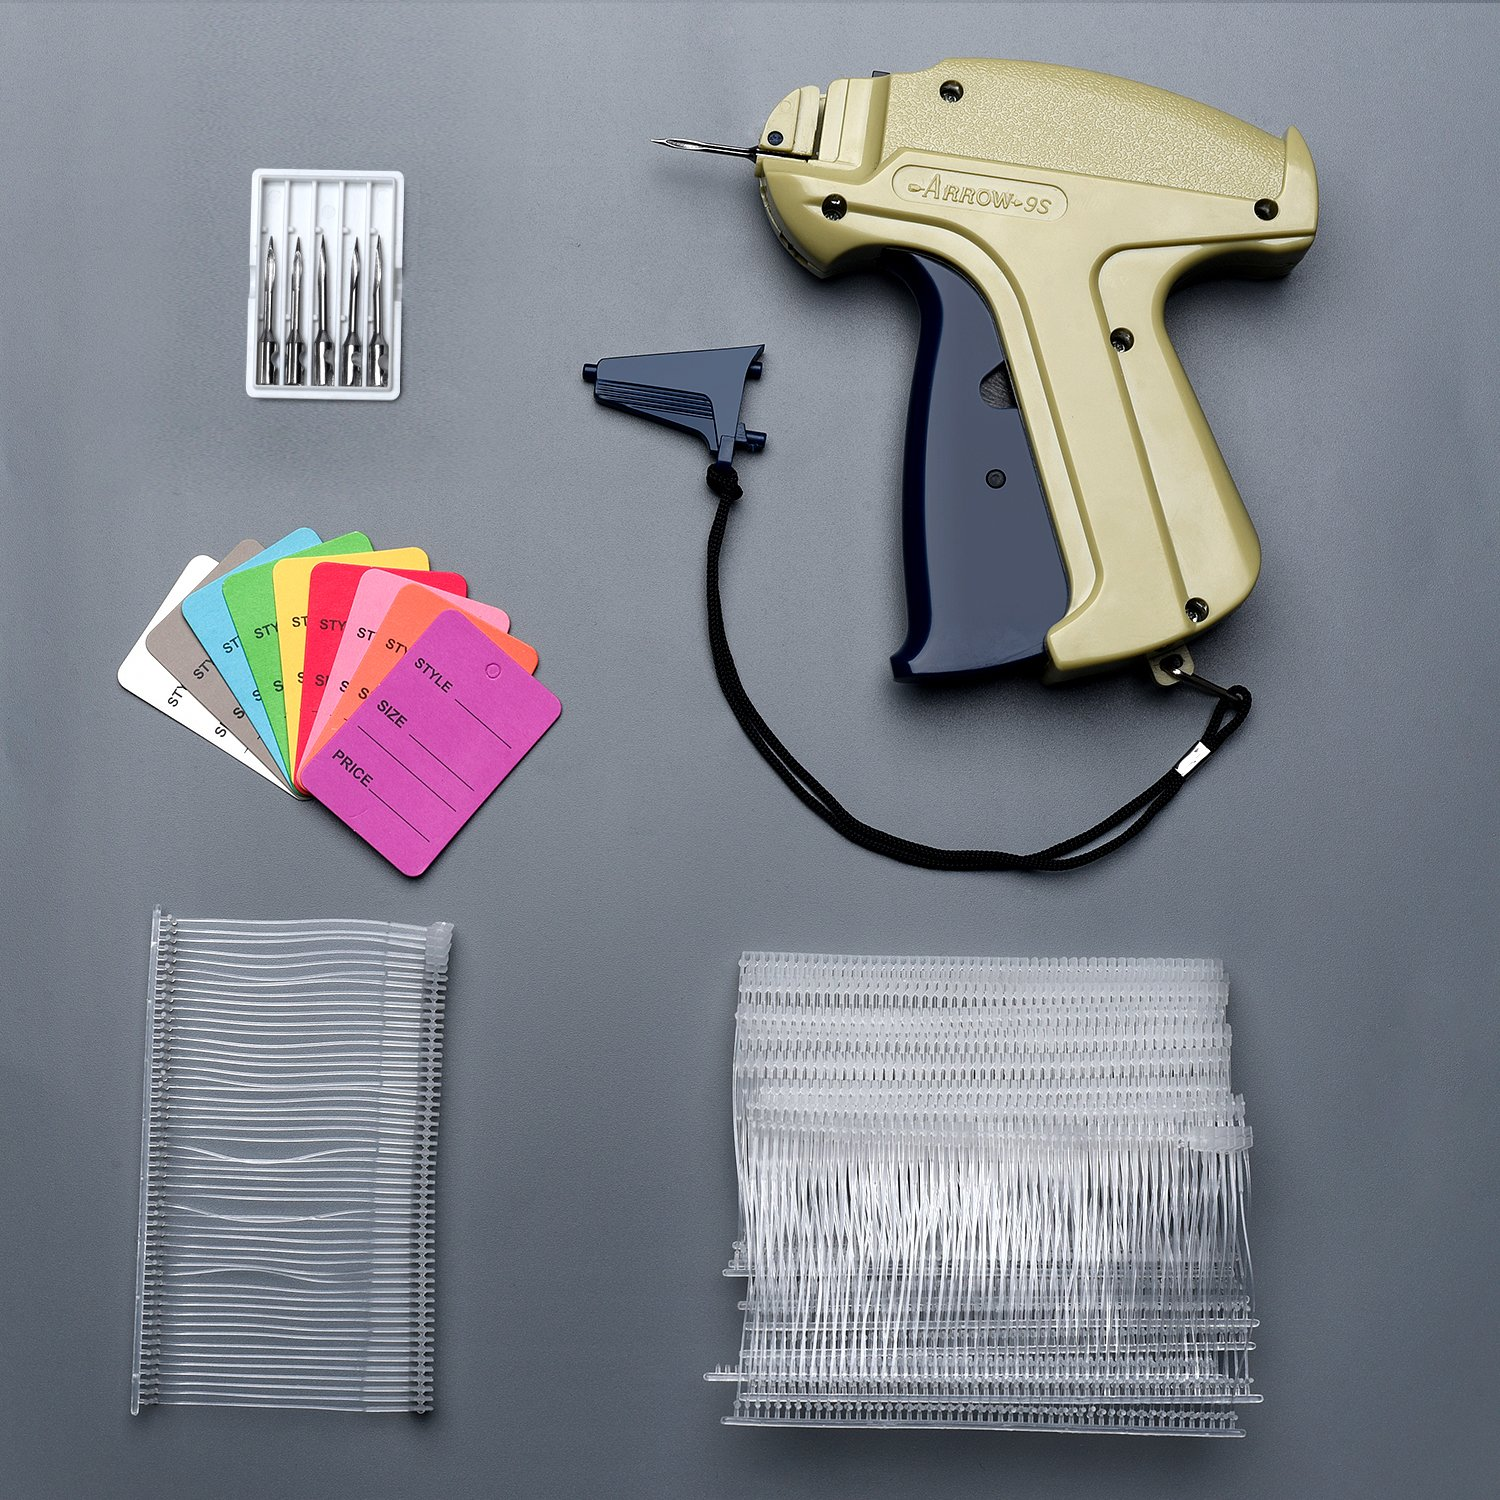 Syntrific Clothes 9S Standard Tag Gun with 1000 Piece Standard Tag Pin Easy to Load Plus 5 Piece NZ202 Needles,Plus 1000 Pieces1.1''X1.7'' Mix Color Price Tag Perfect for Consignment Sale, Family Yard